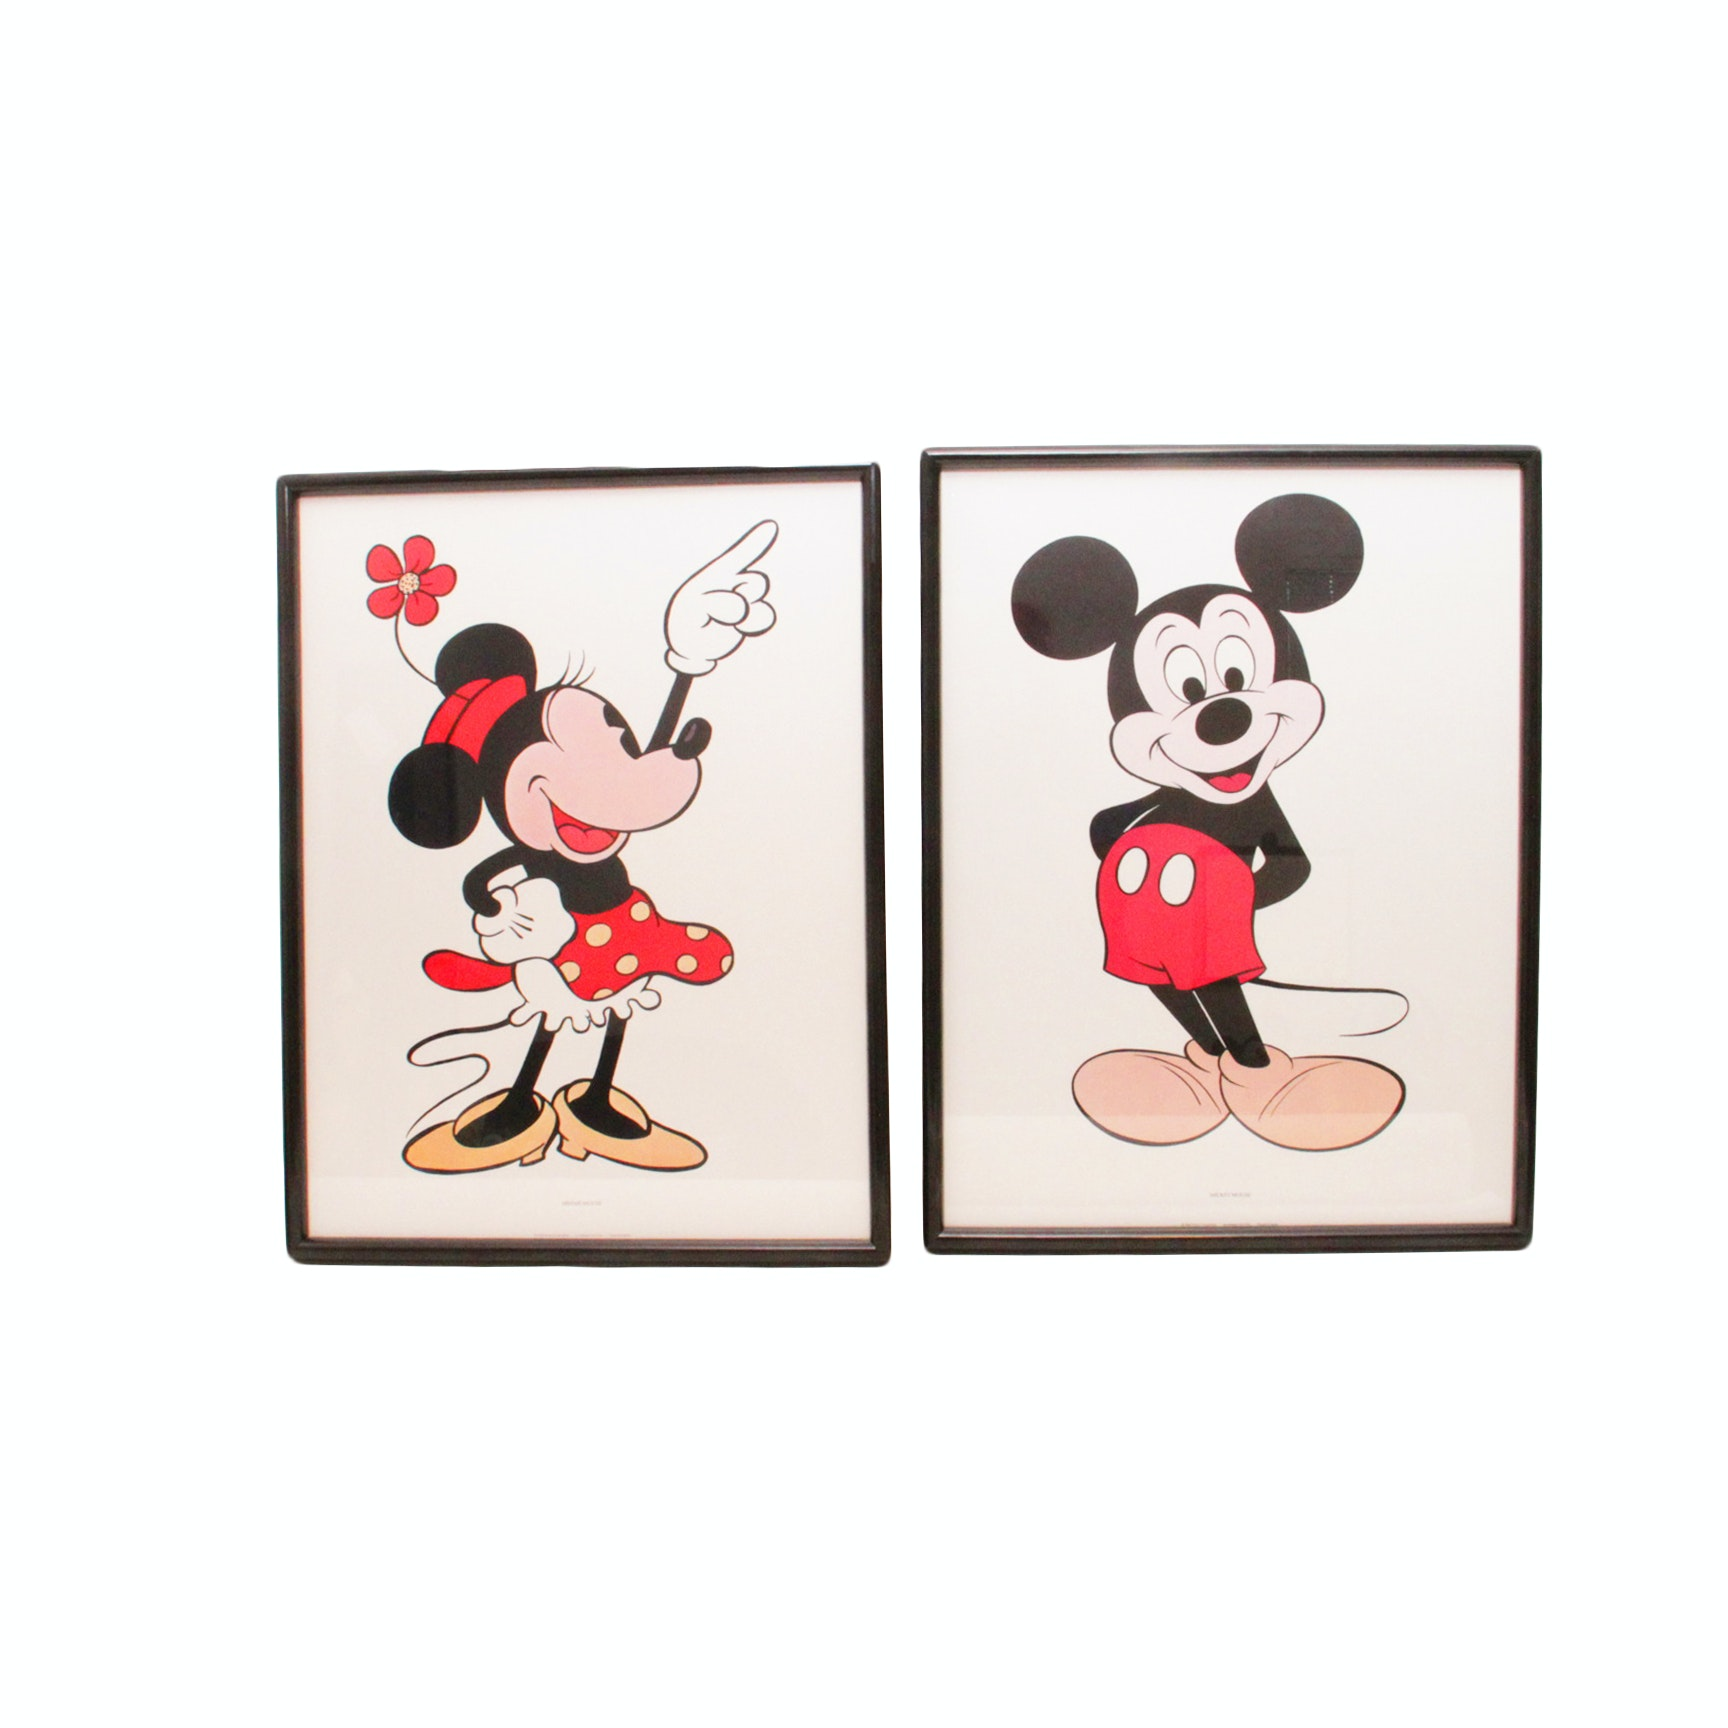 A Pairing of Micky and Minnie Mouse Offset Lithographs